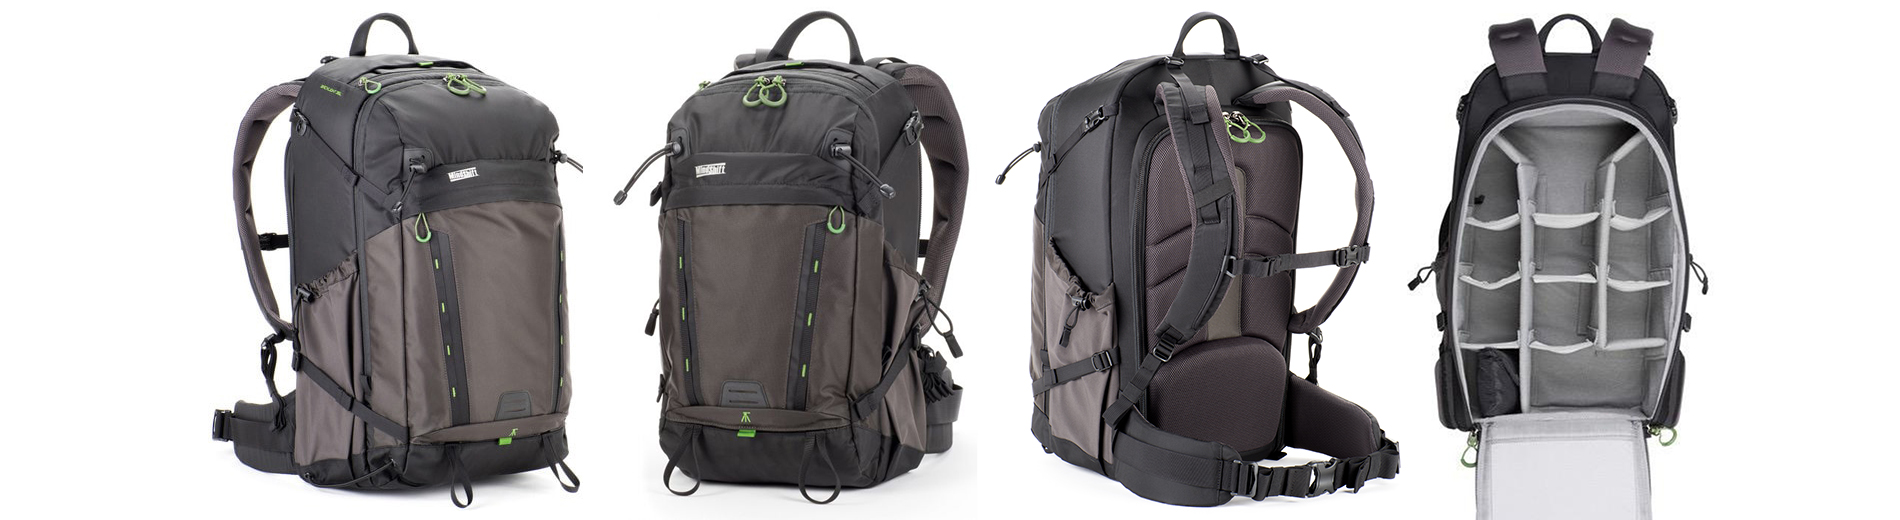 Uus fotokott – MindShift BackLight 36l